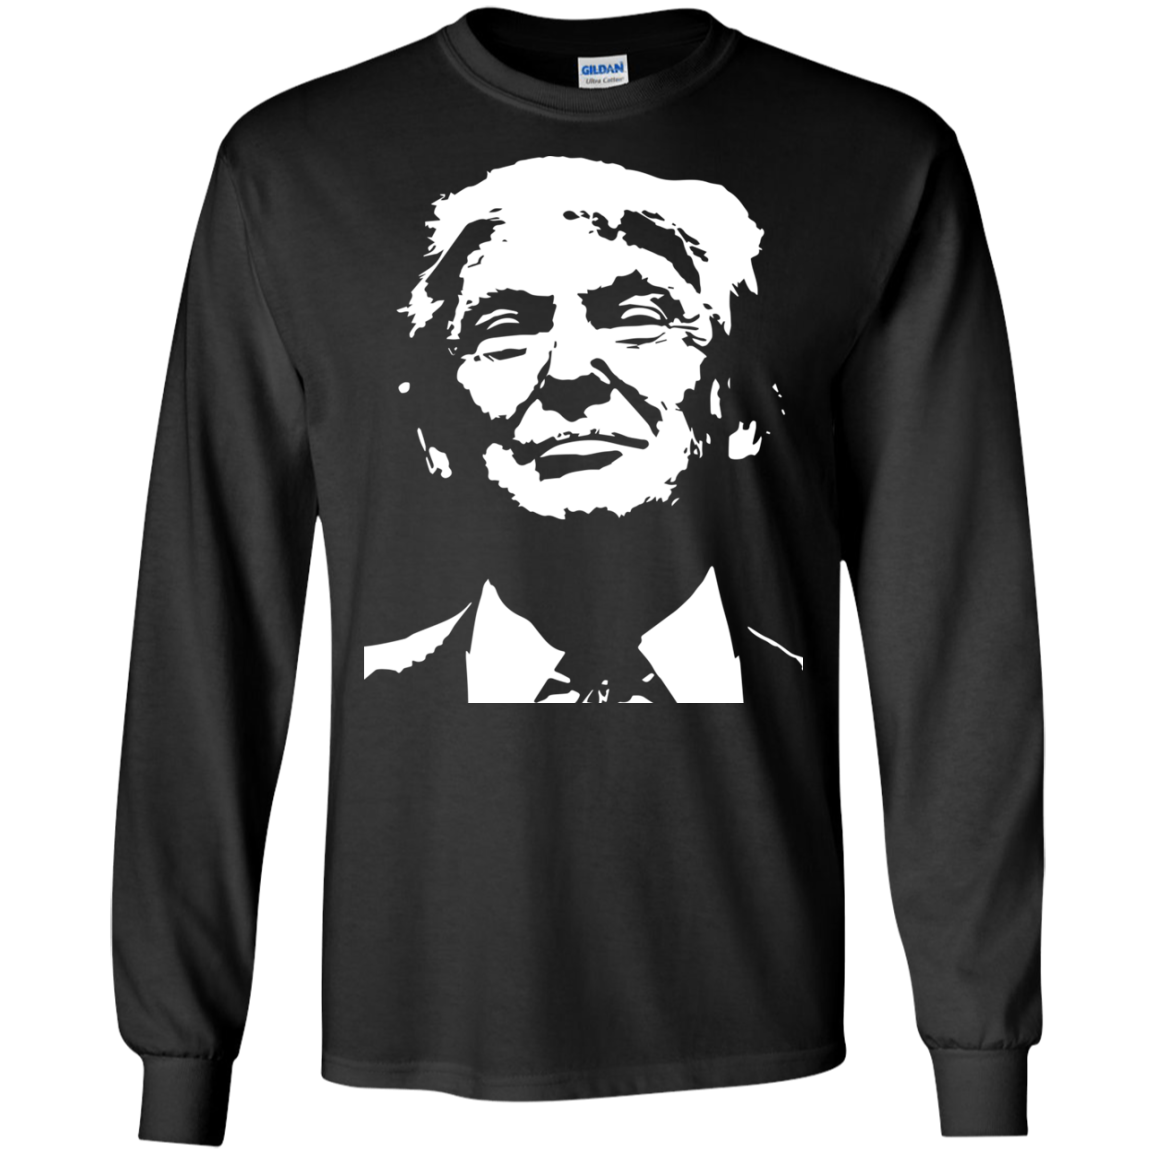 CAN'T STUMP THE TRUMP: LS Ultra Cotton T-Shirt